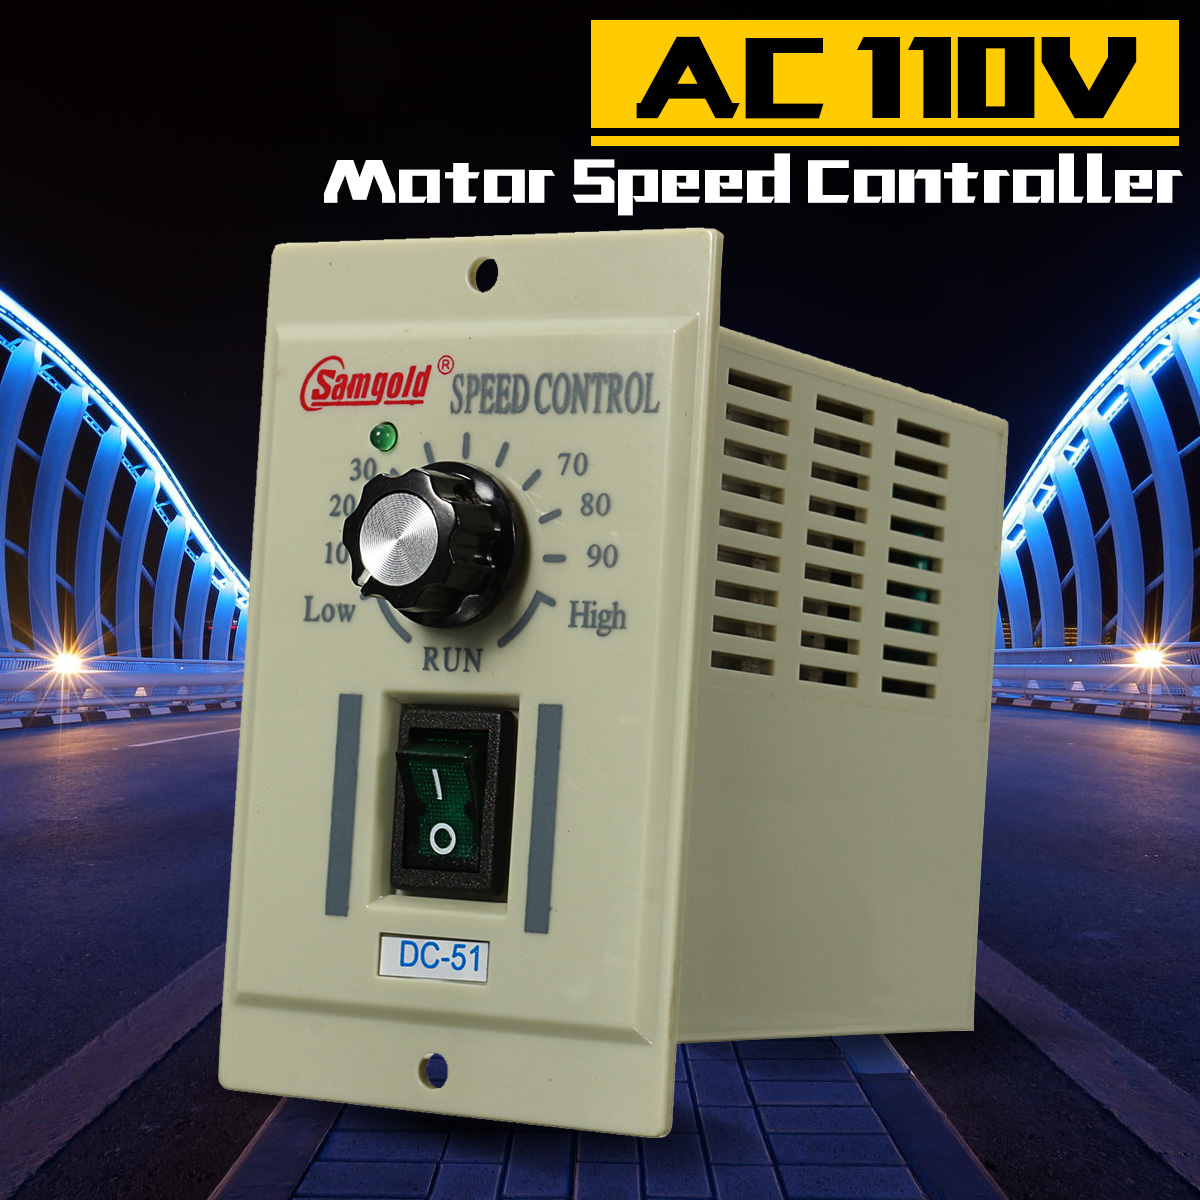 DC-51 1/3 Phase AC 110V Motor Speed Controller 400W Variable Adjust For DC 90V Over Current/Short Circuit Protection AccessoriesDC-51 1/3 Phase AC 110V Motor Speed Controller 400W Variable Adjust For DC 90V Over Current/Short Circuit Protection Accessories